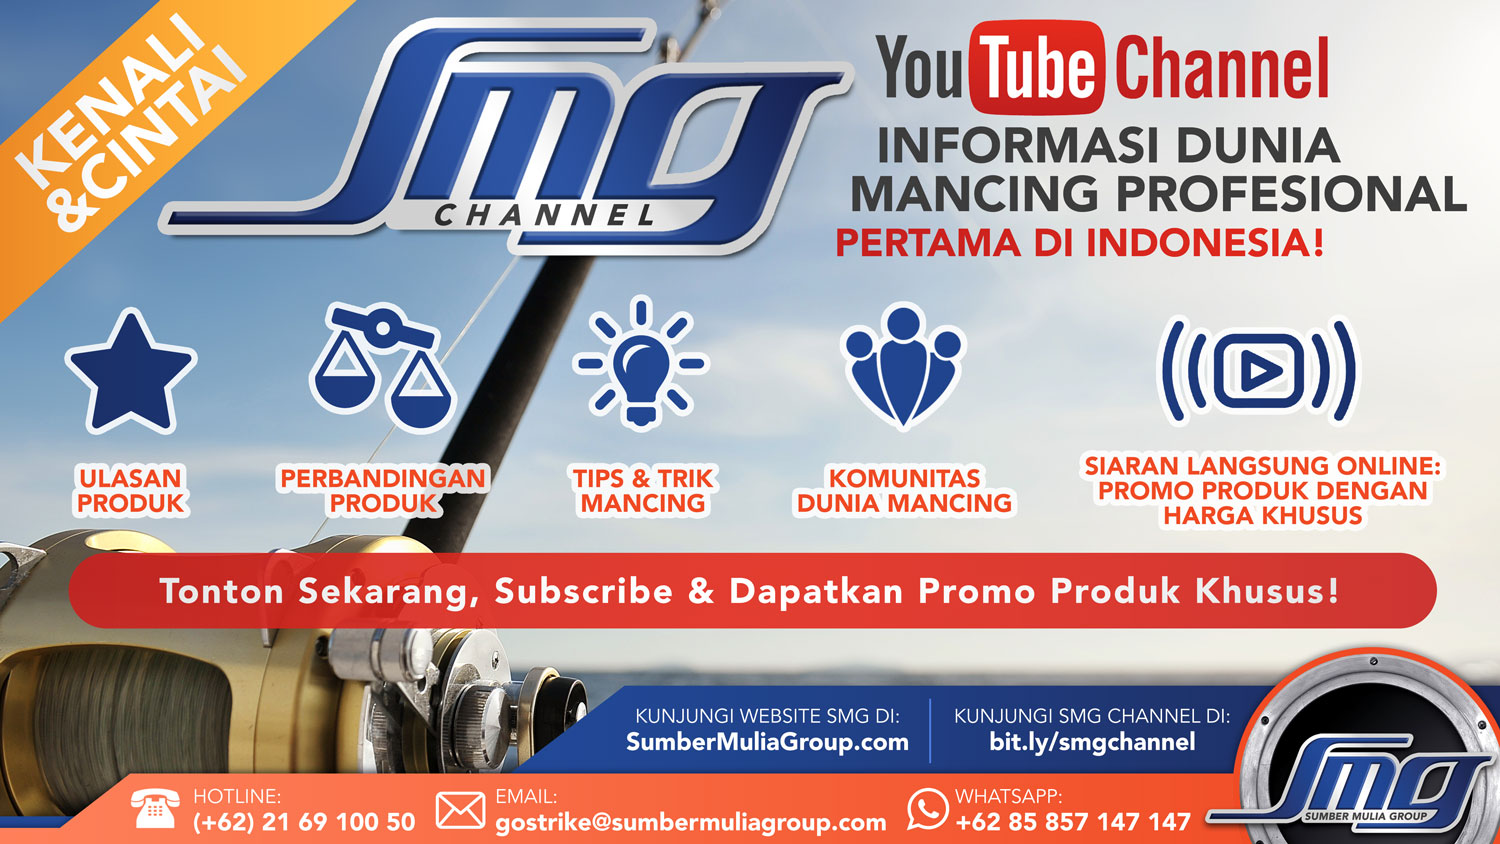 sumber-mulia-group-smg-berita-smg-channel